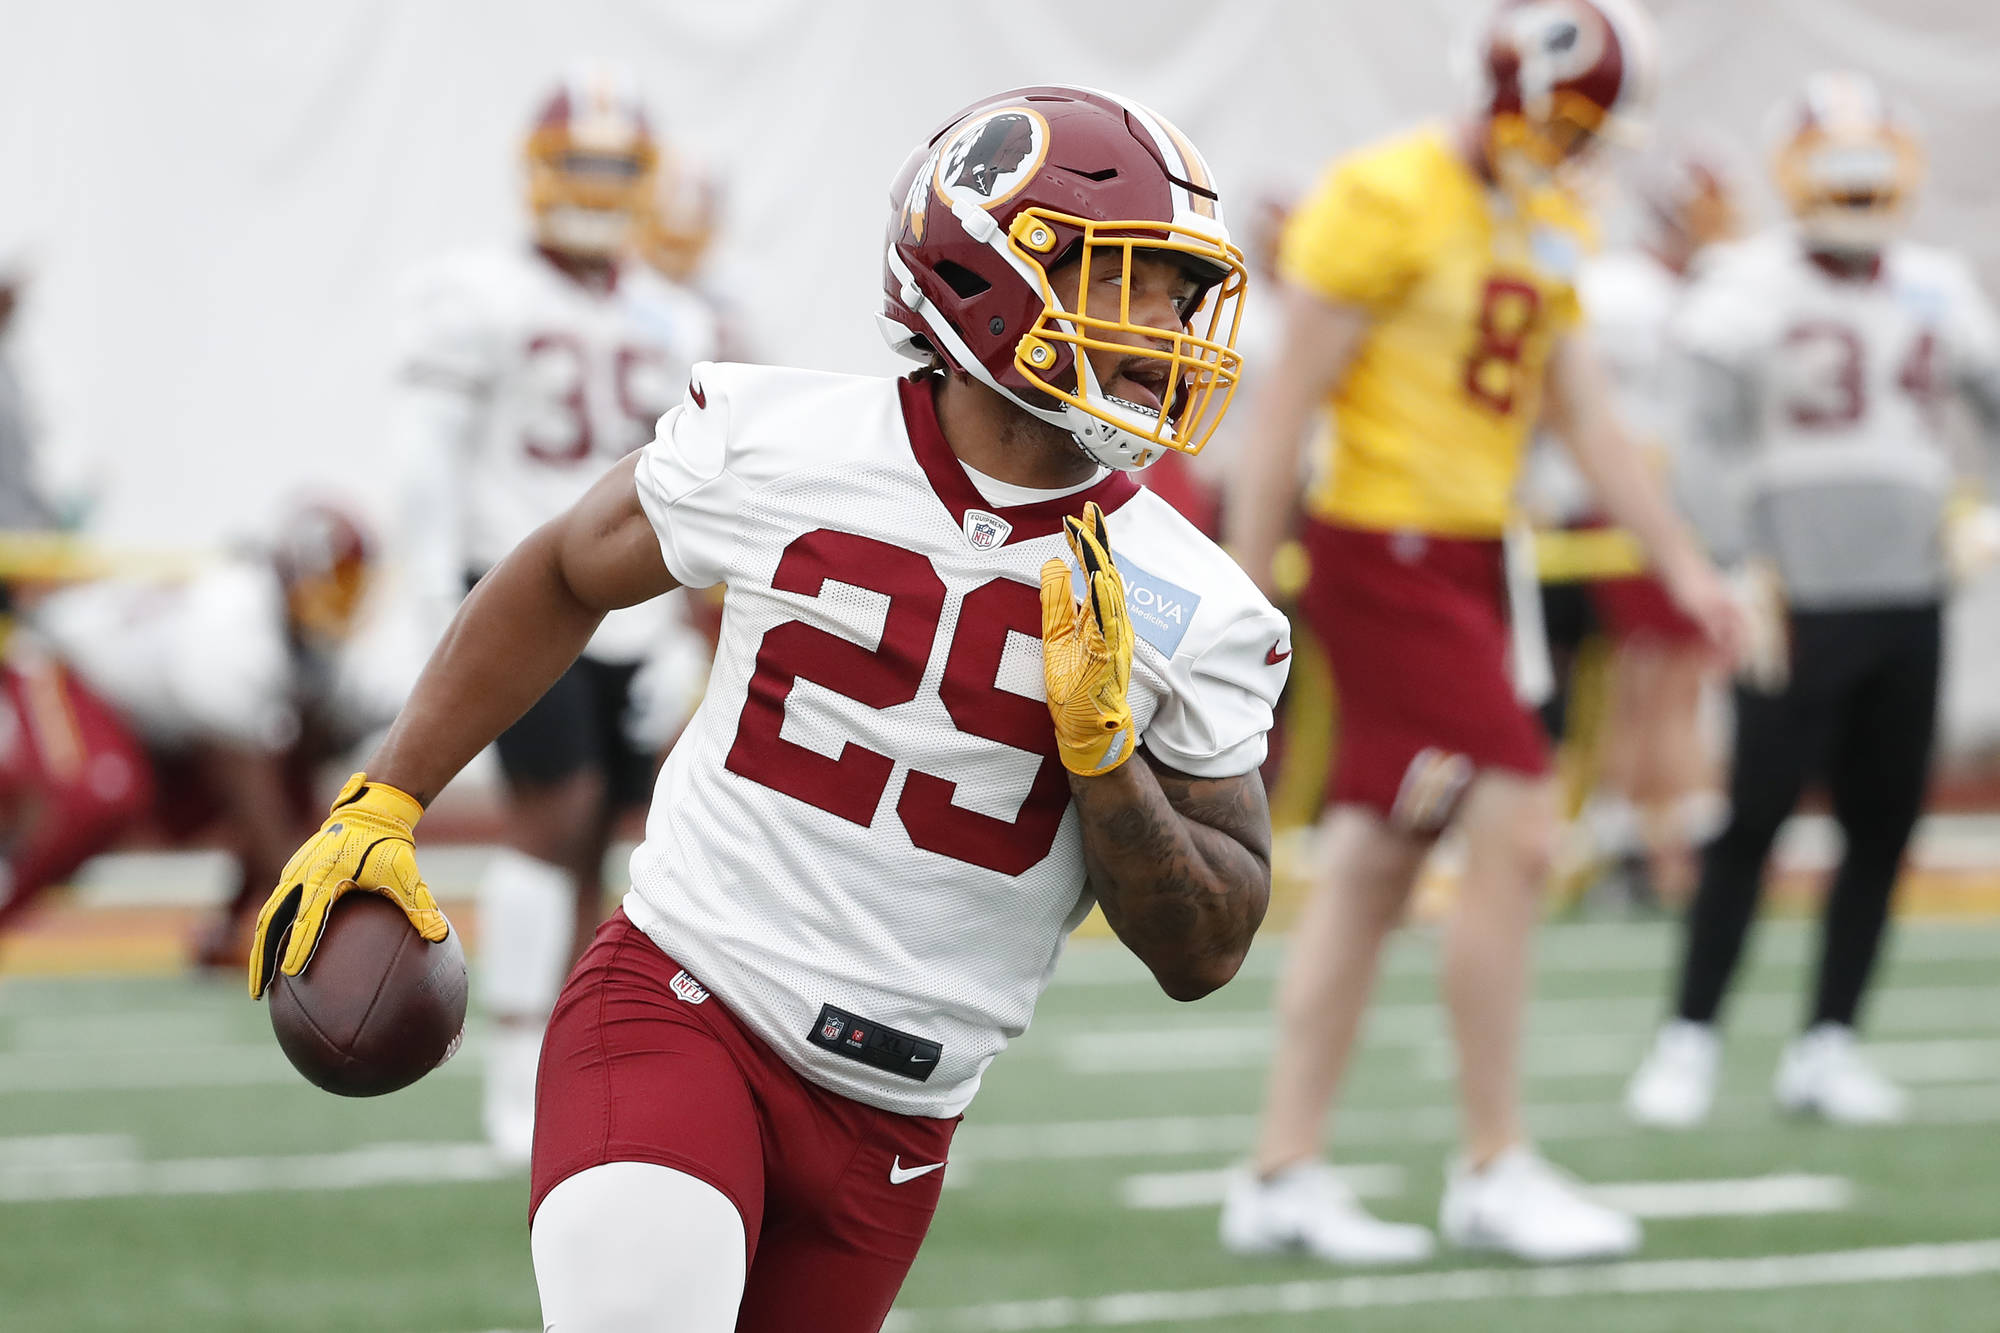 Upbeat Derrius Guice shares post-surgery pic with fans